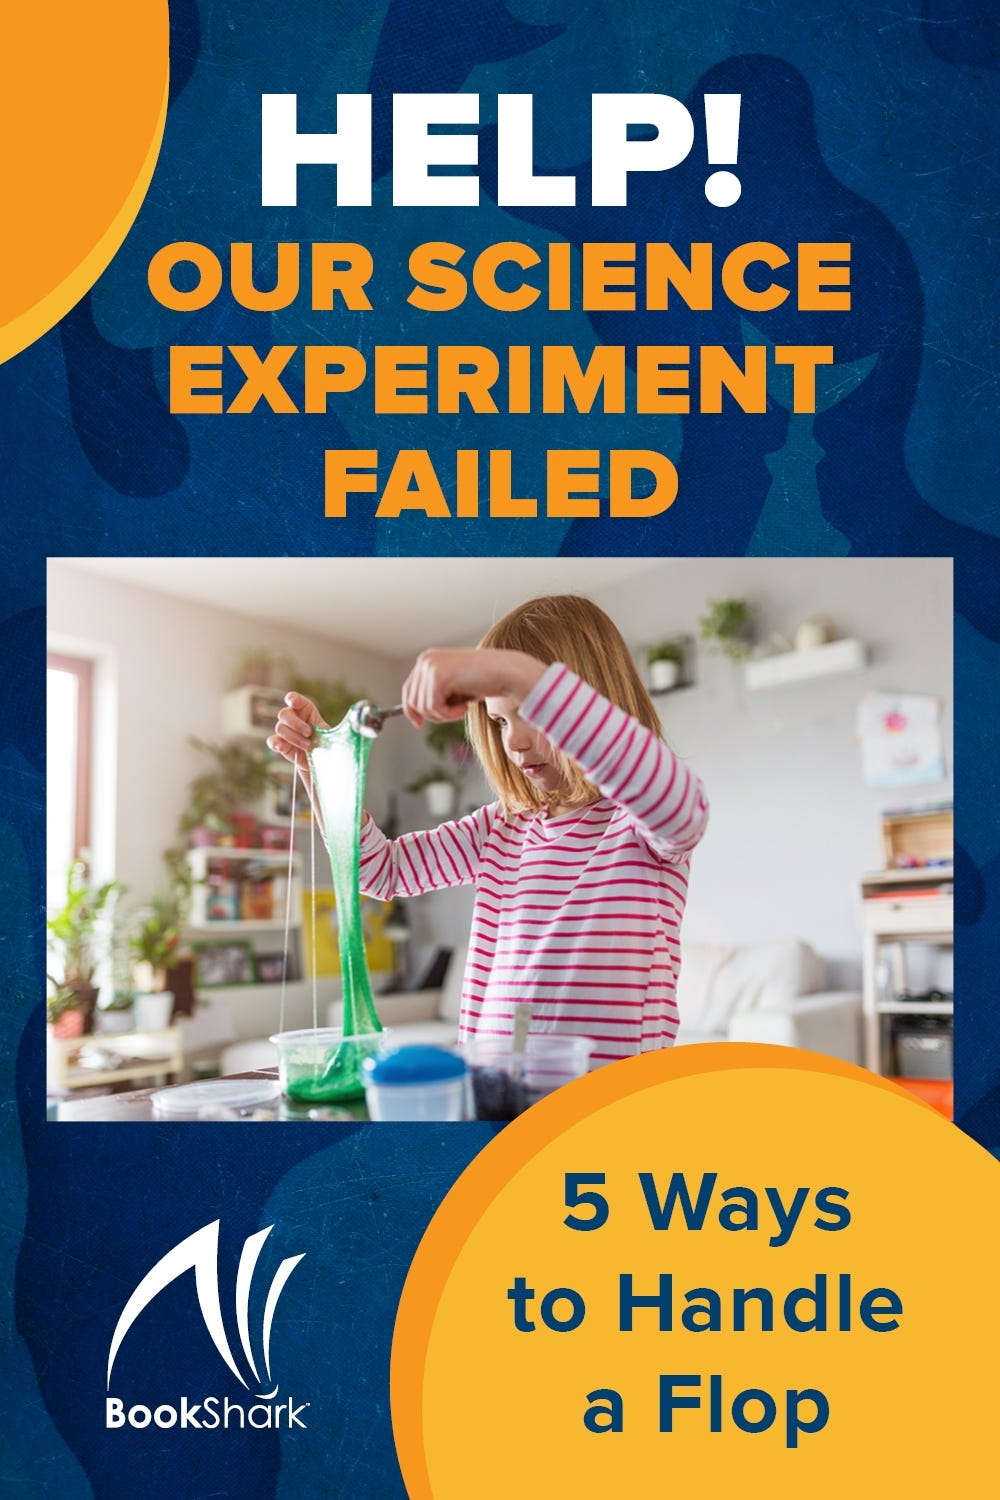 Help! Our Science Experiment Failed